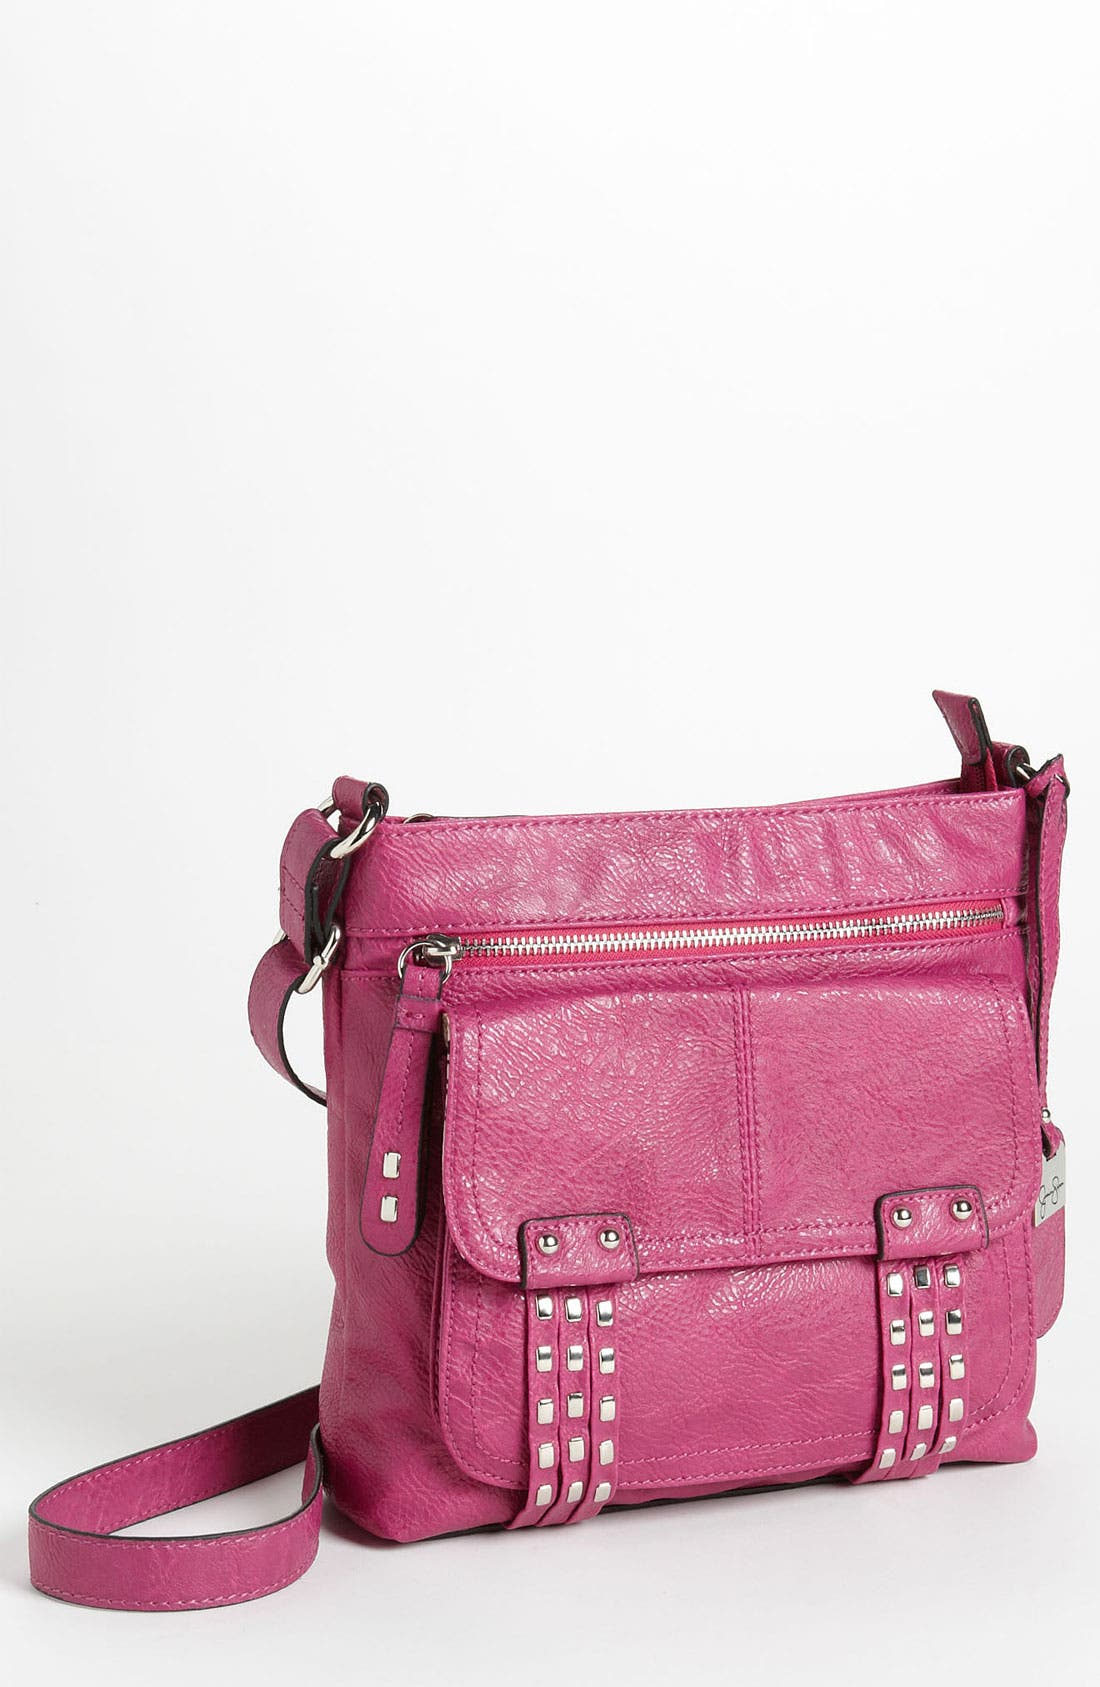 Main Image - Jessica Simpson 'Chelsea' Crossbody Bag